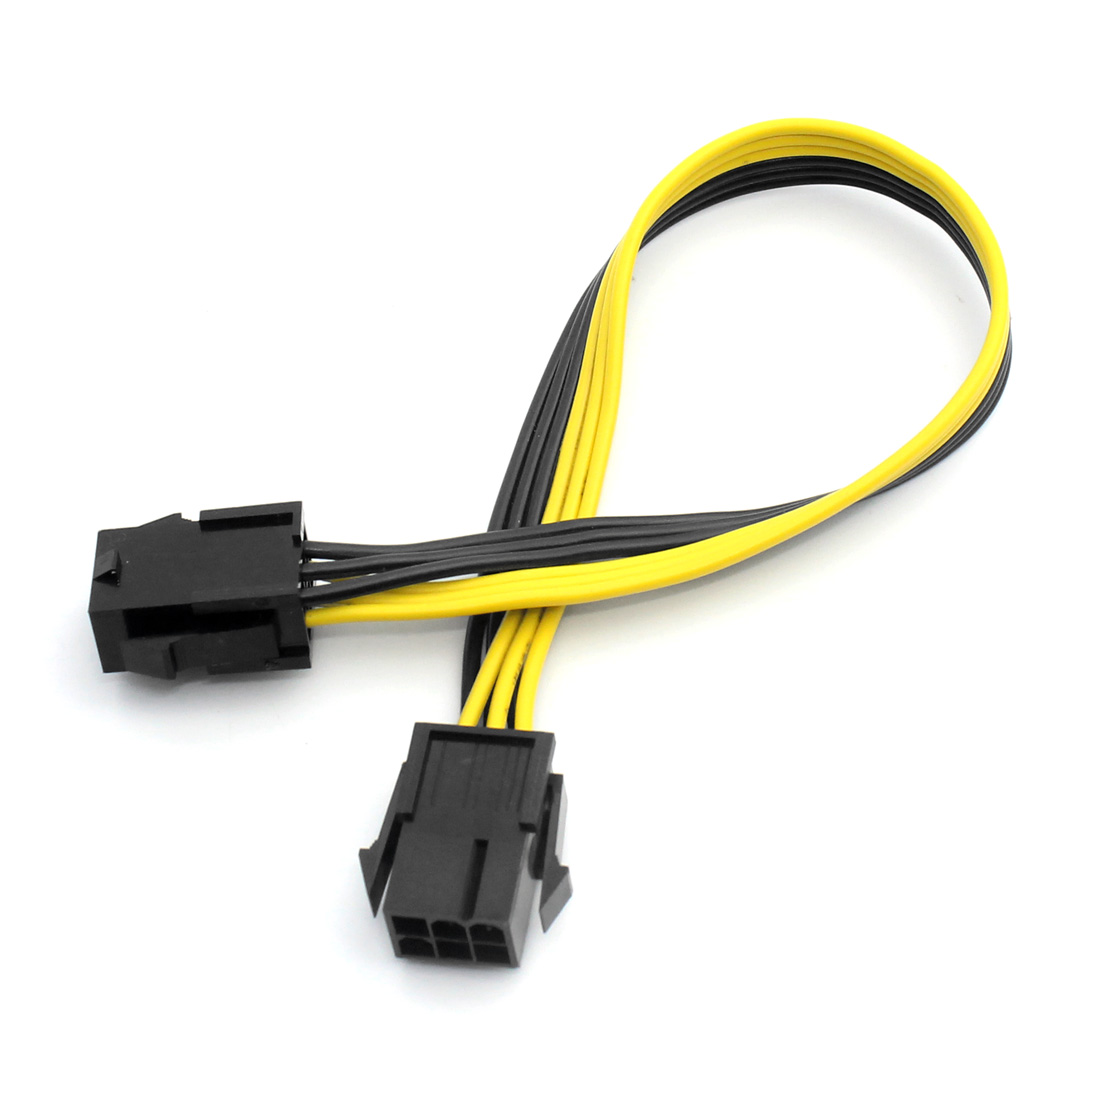 hight resolution of 100pcs xt xinte 6p female to female extension cord adapter cable 25cm item no f23156 100